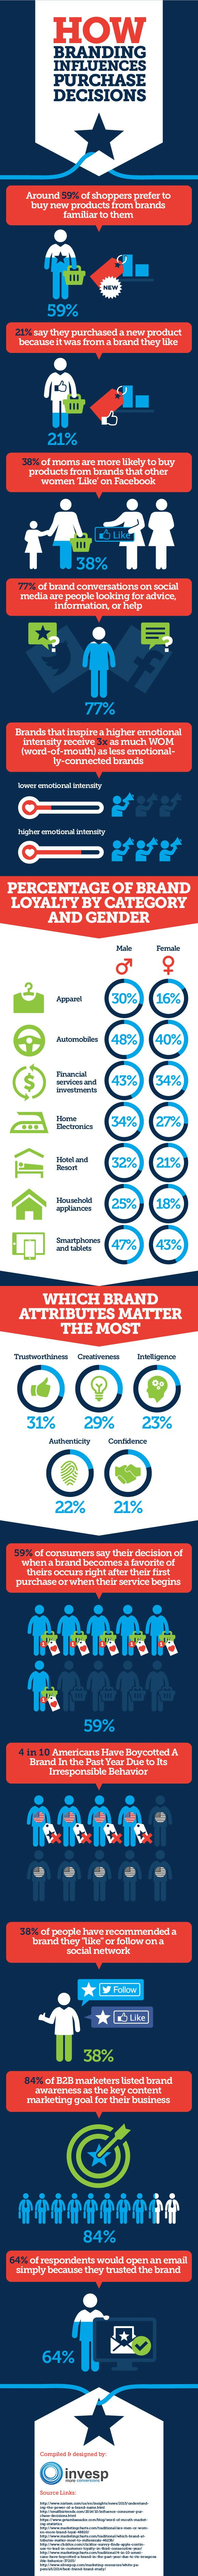 How Branding Influences Purchase Decisions #Infographic